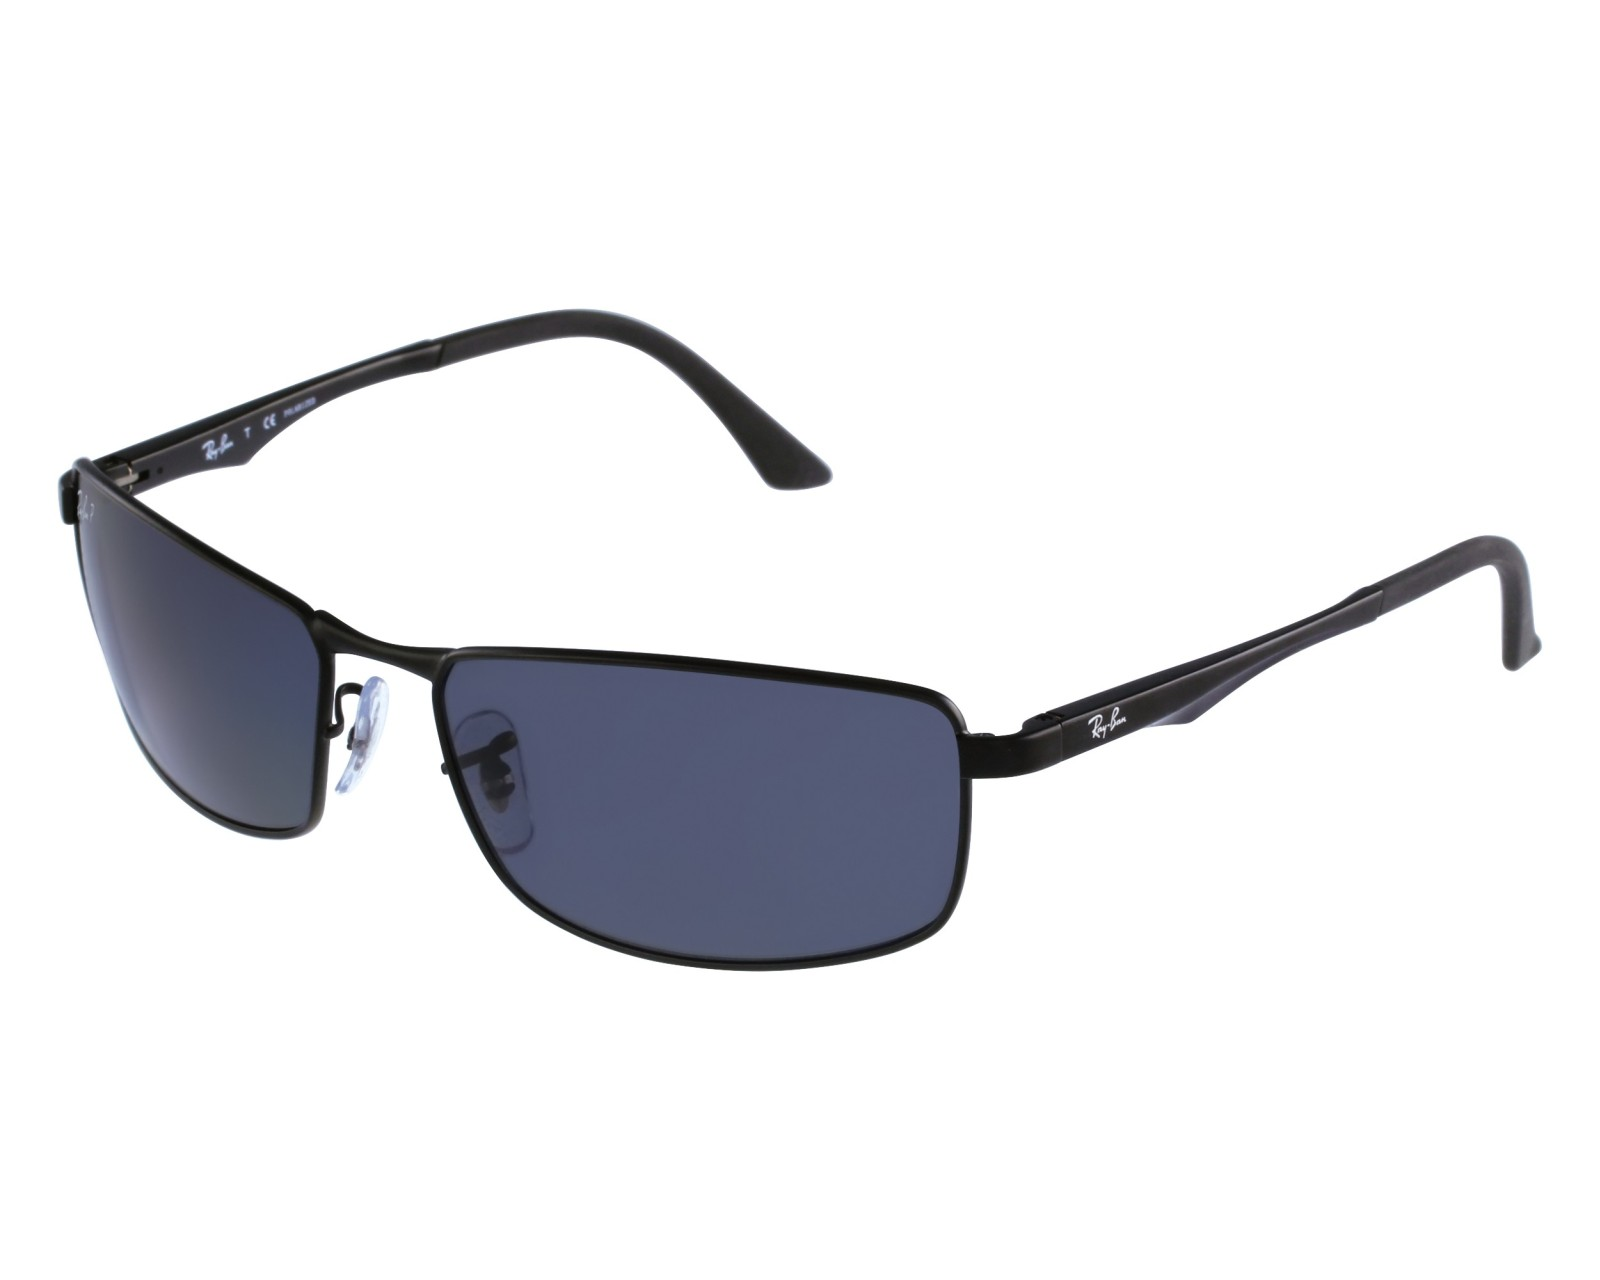 4ea9e88339 Sunglasses Ray-Ban RB-3498 006 81 61-17 Black front view